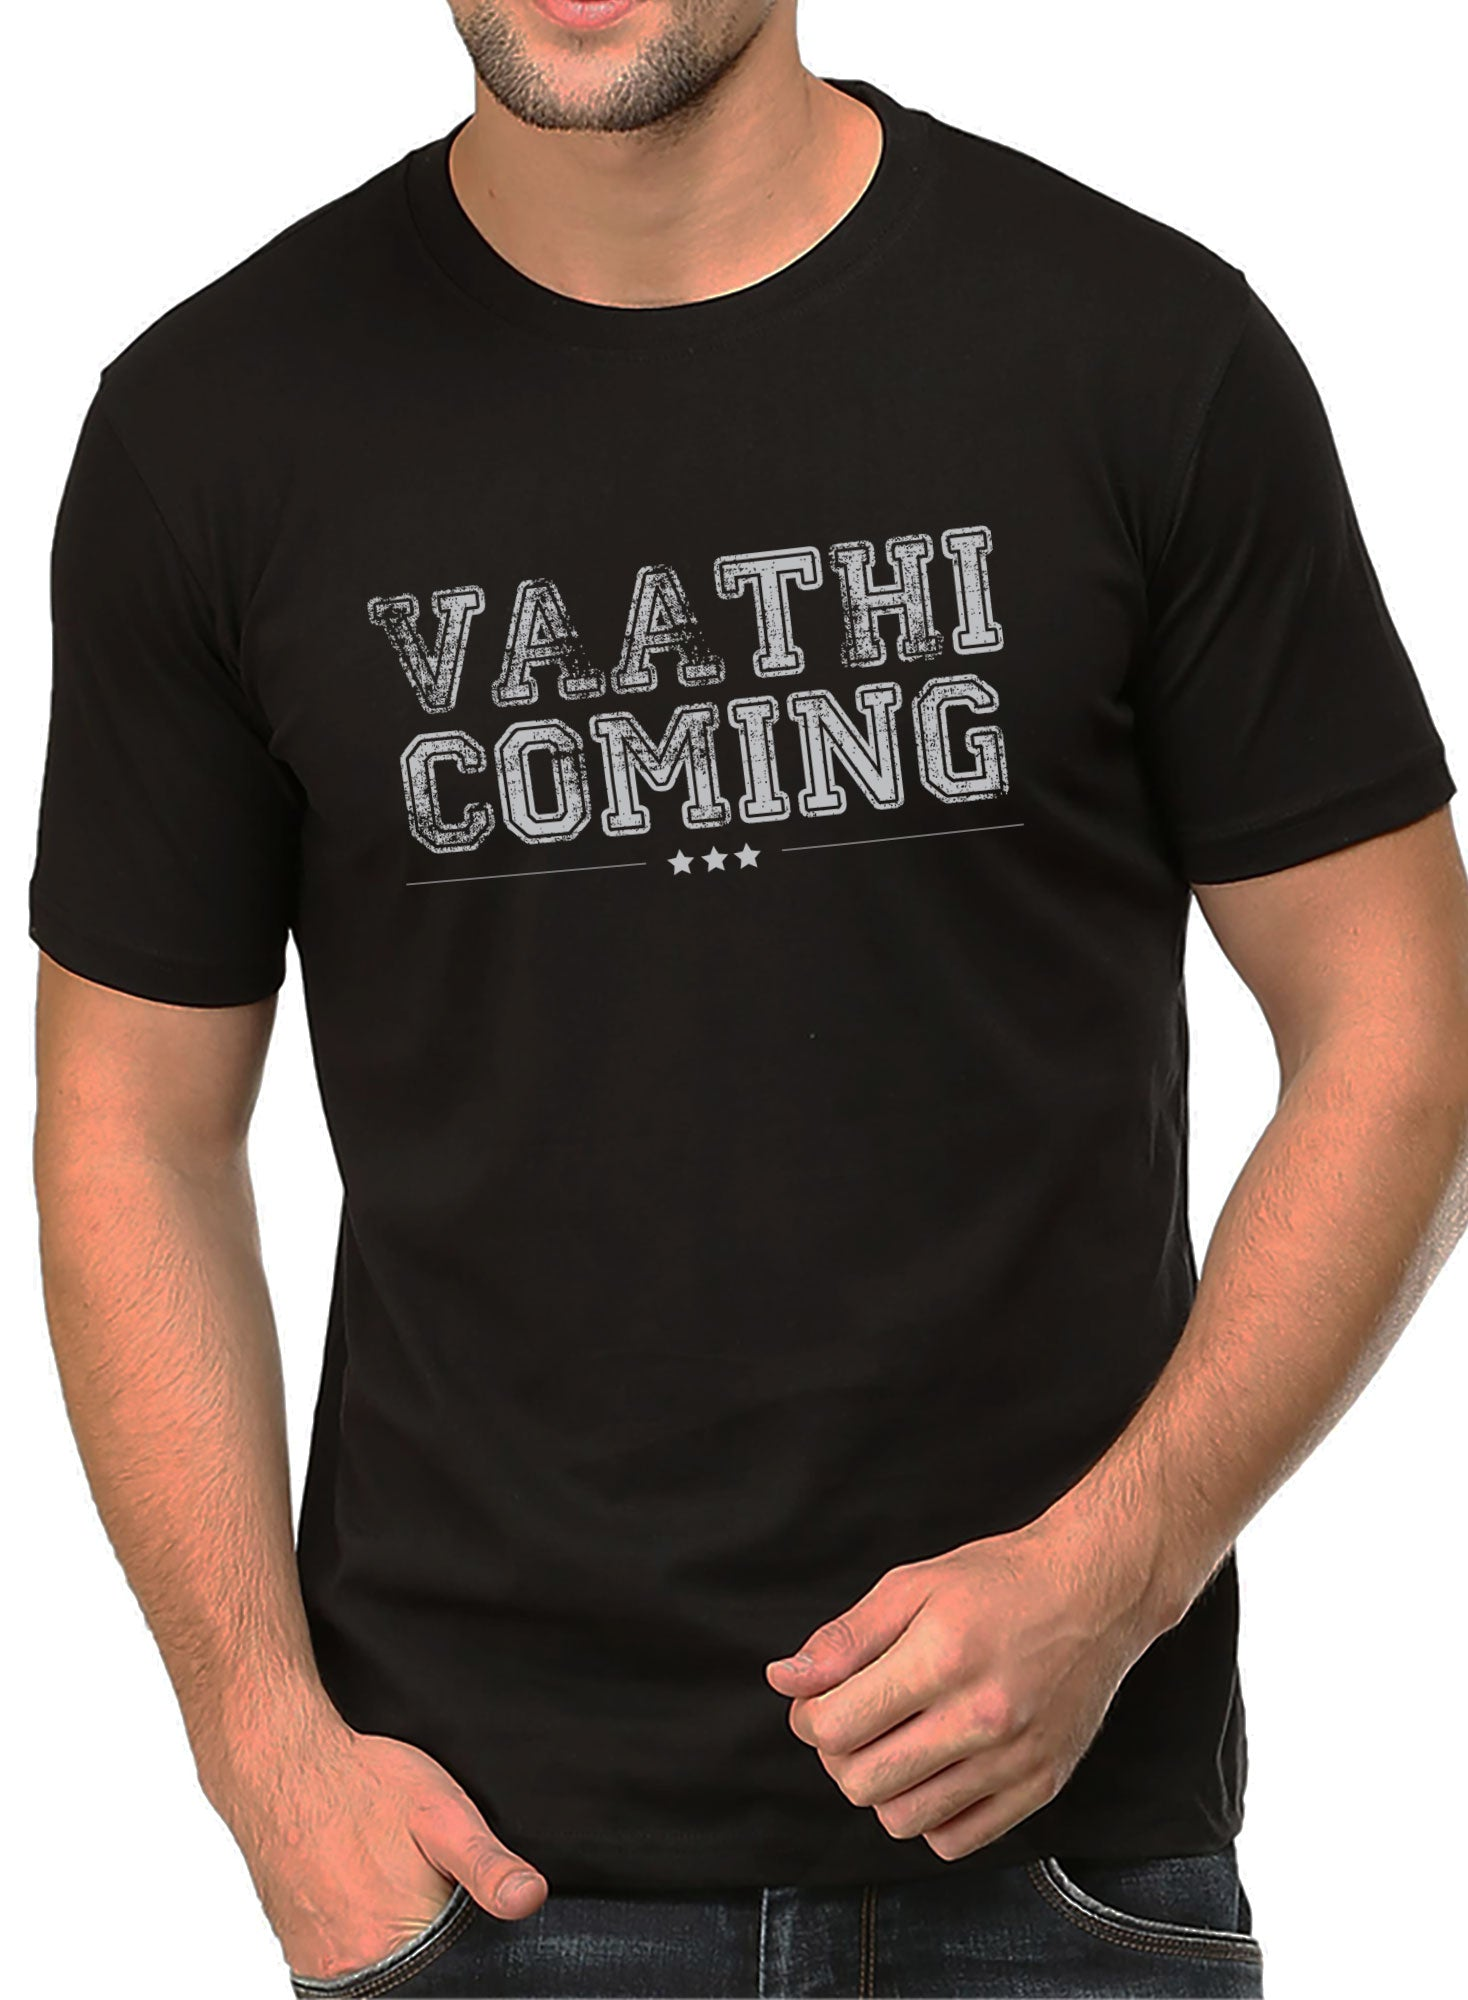 Vaathi Coming T-shirts - TrendTones